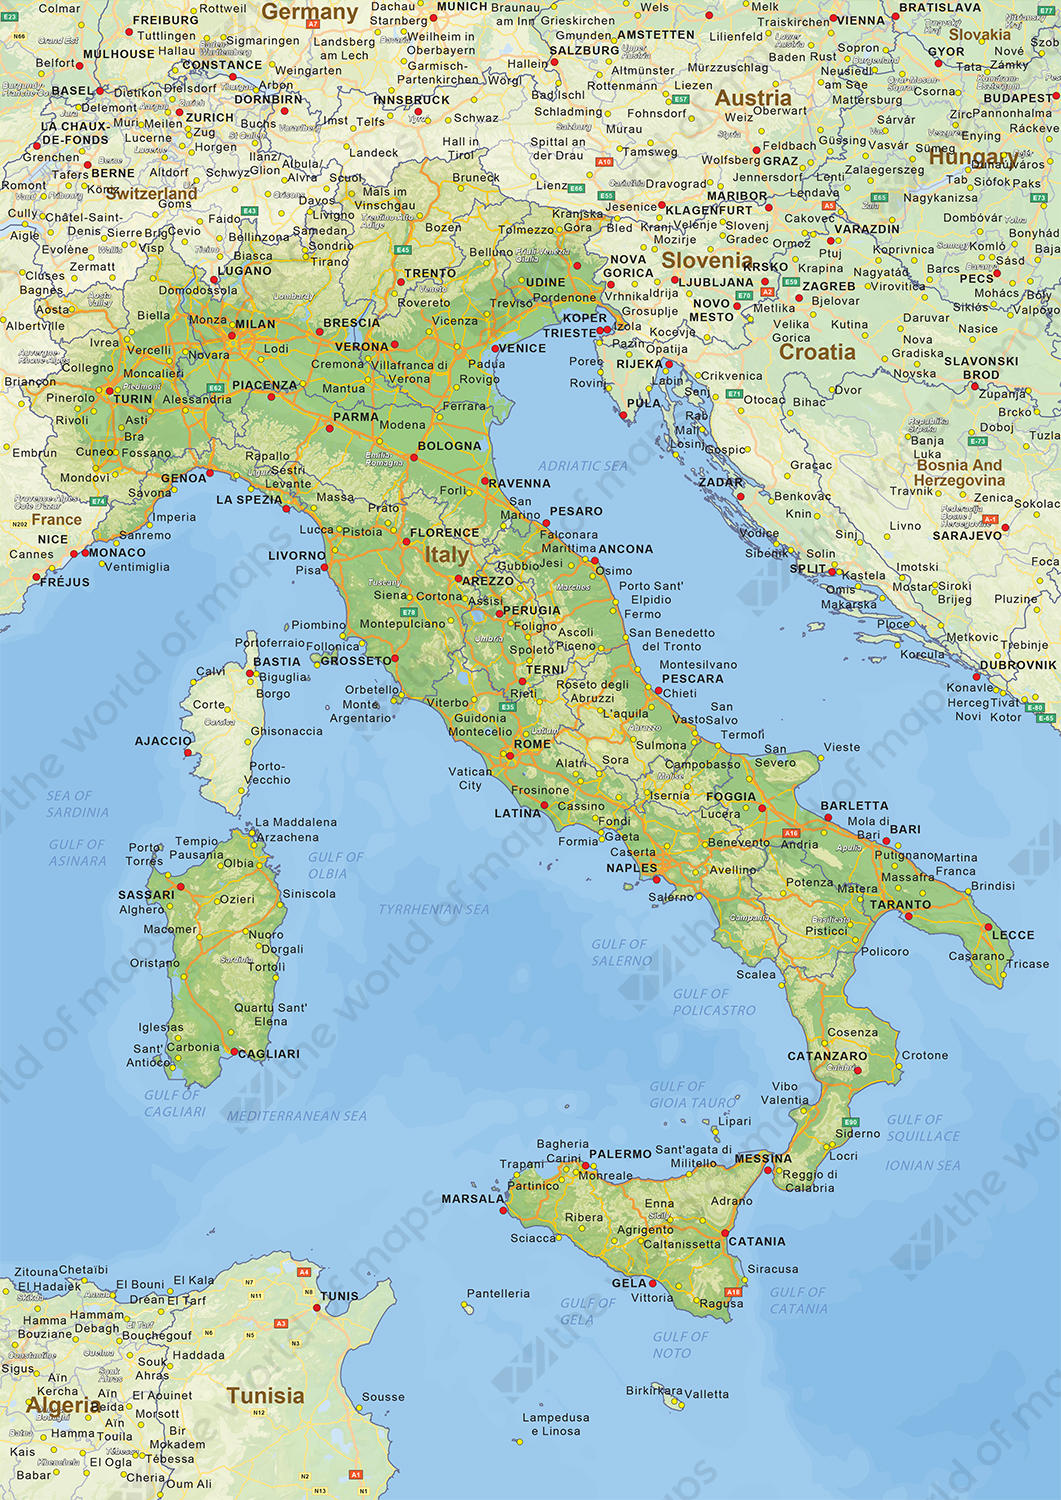 Digital physical map of Italy